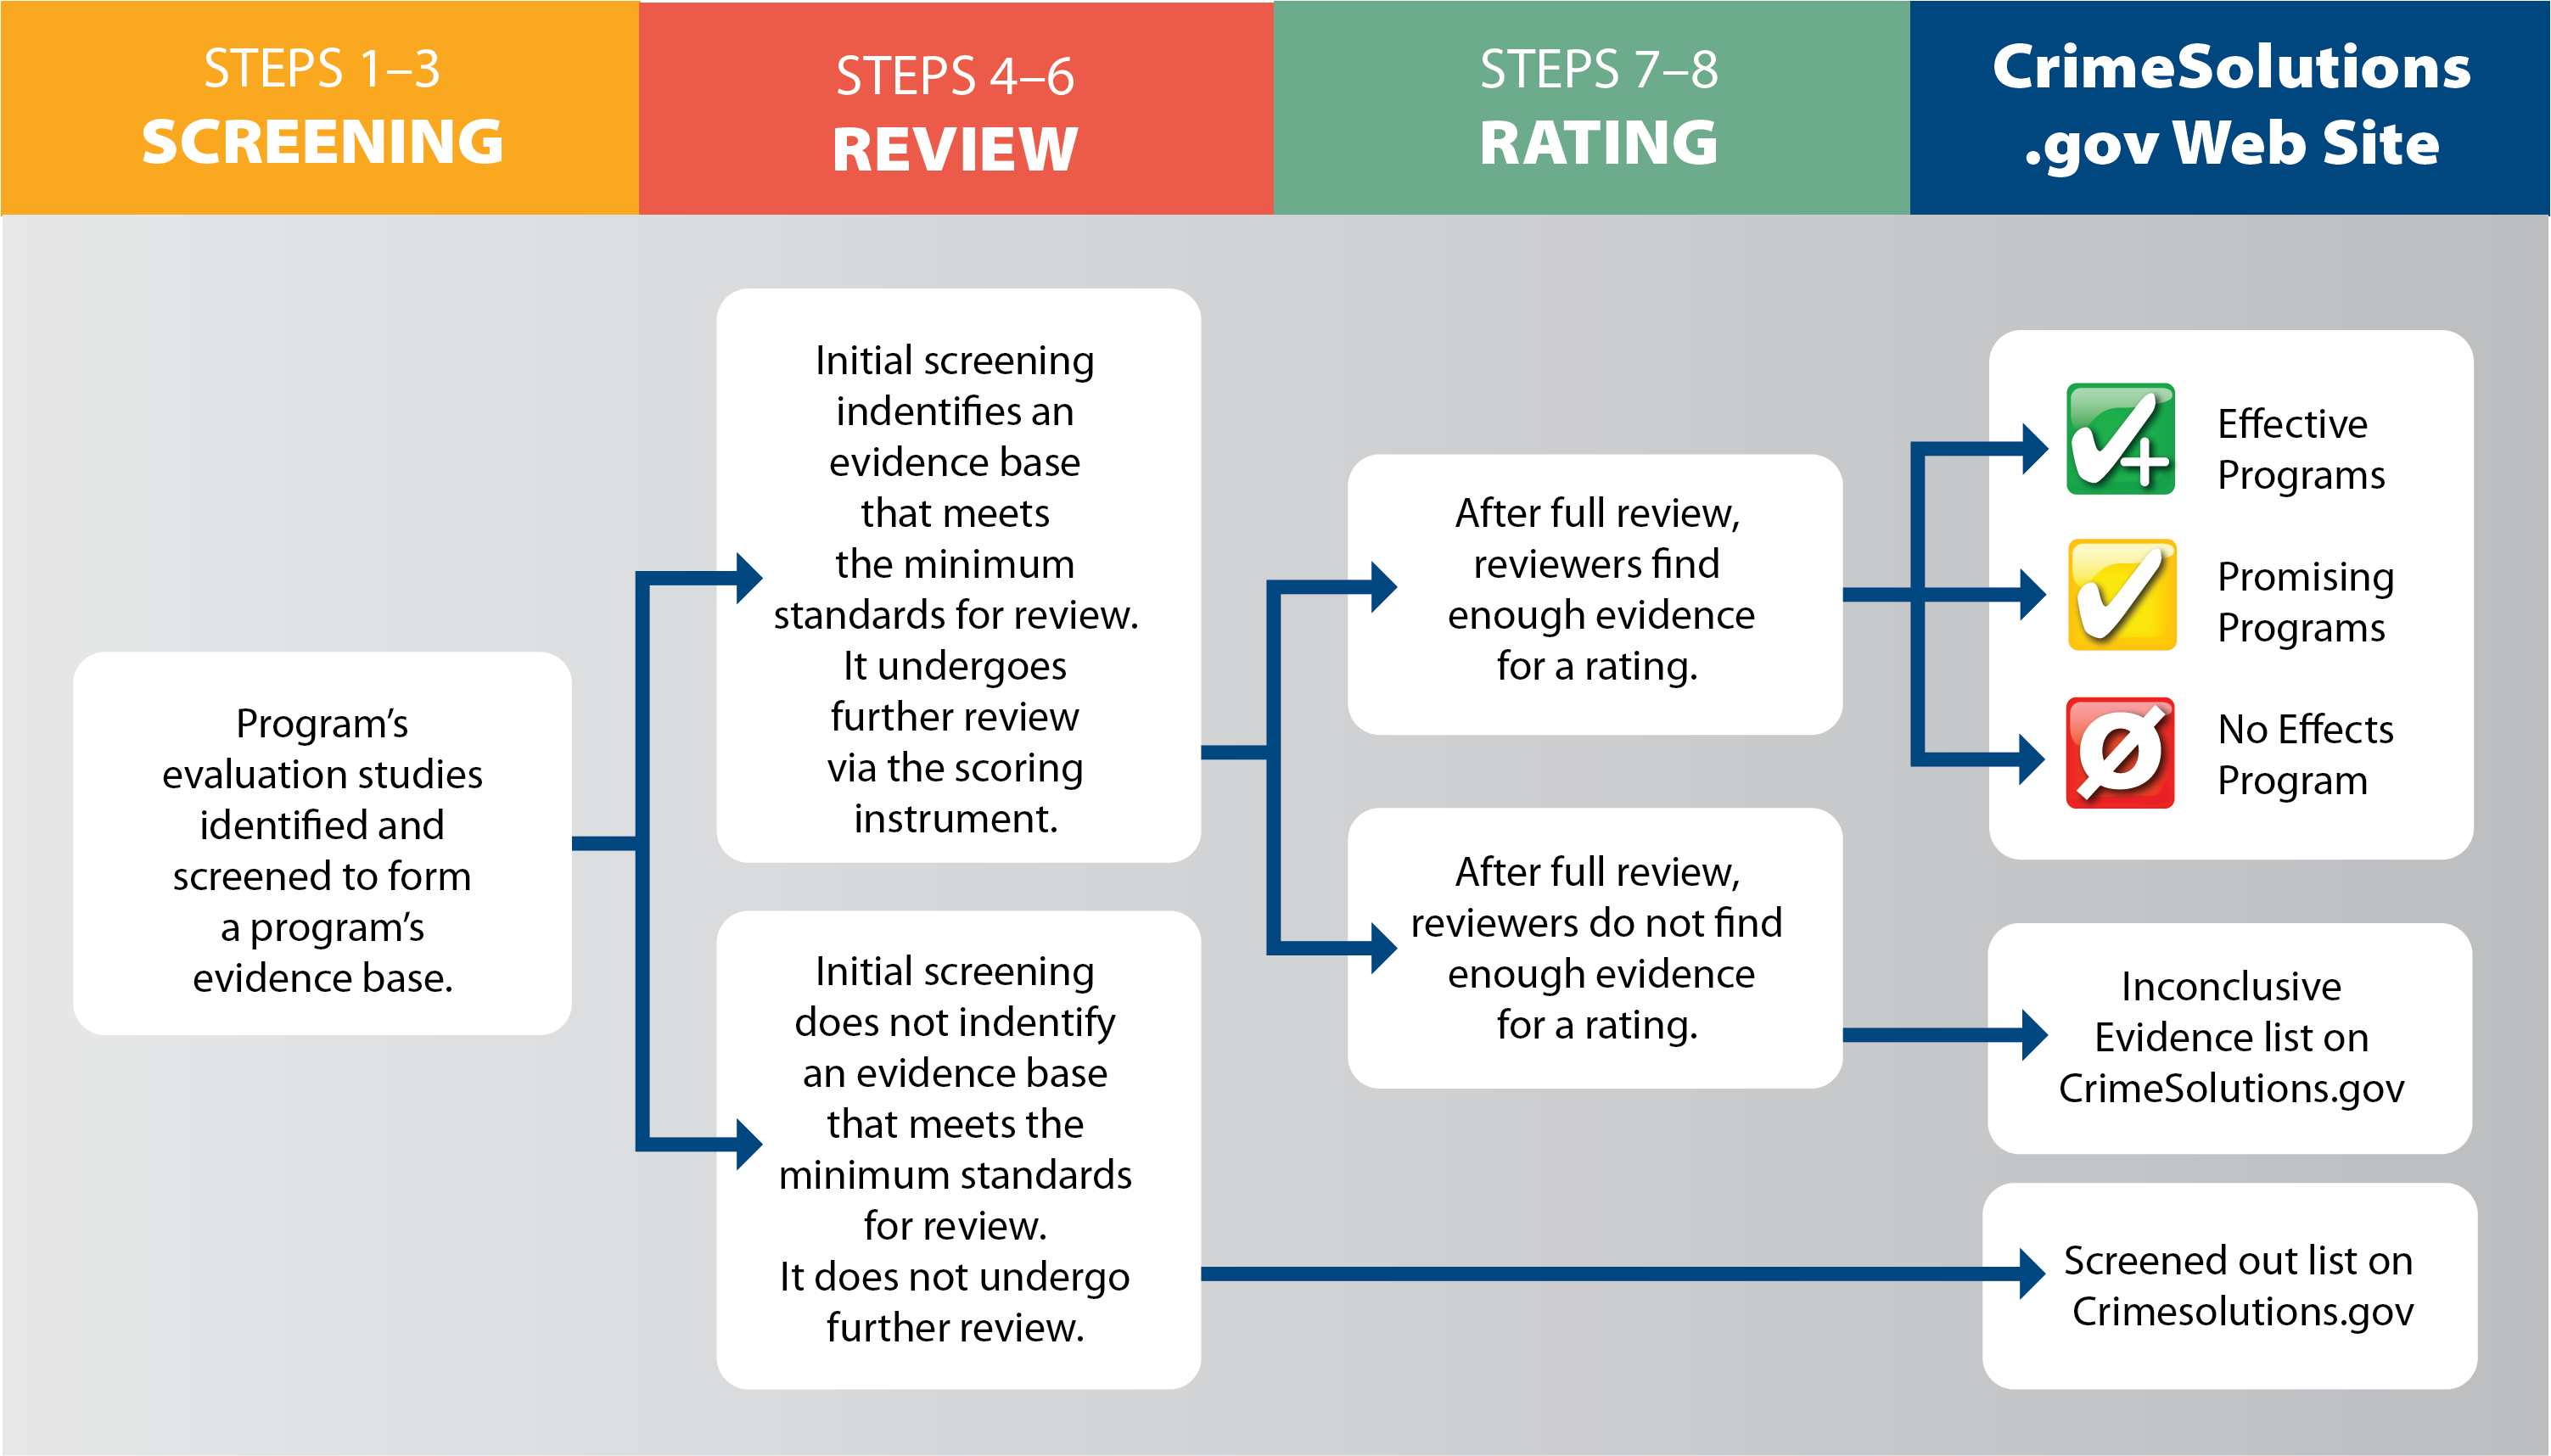 Flowchart showing the process or reviewing and rating a program's evidence of effects on CrimeSolutions